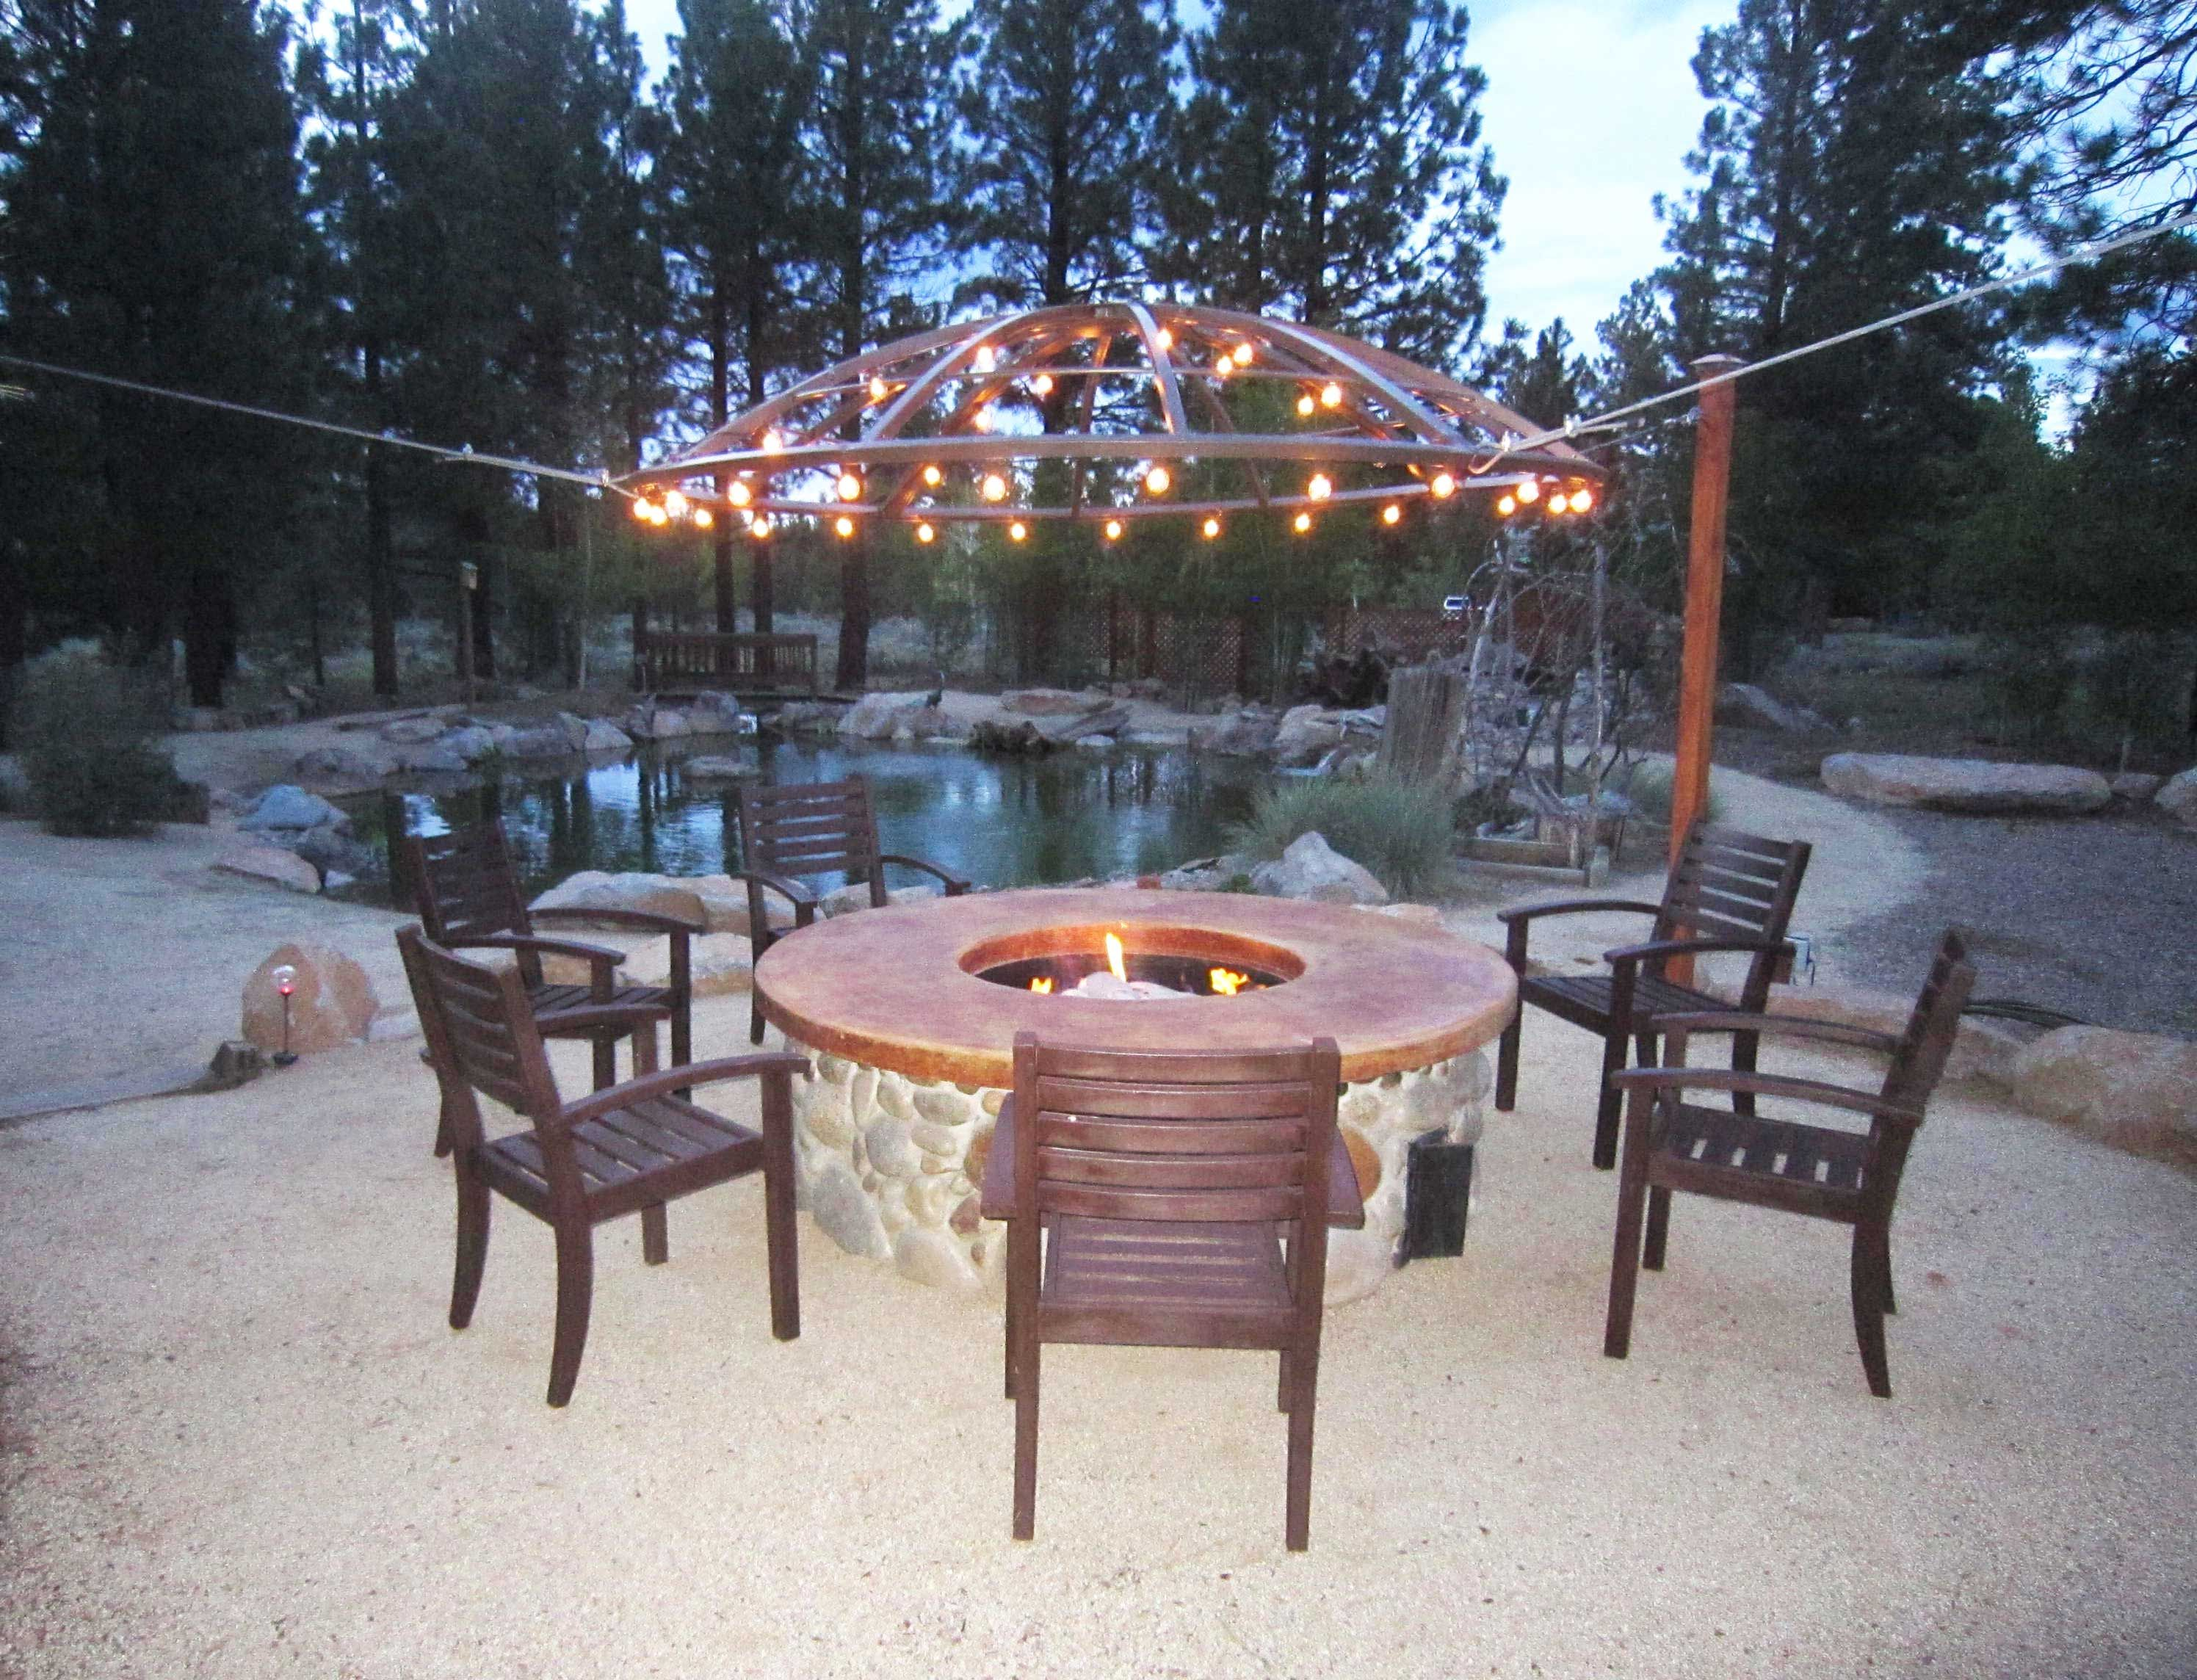 Wed Love Smore Awesome Customer Photos Like This One From Daniel An Outdoor Light Fixture Wiring In Addition Led Lighting He Used Our Black Wire Globe Lights And Upcycled A Satellite Dish To Create